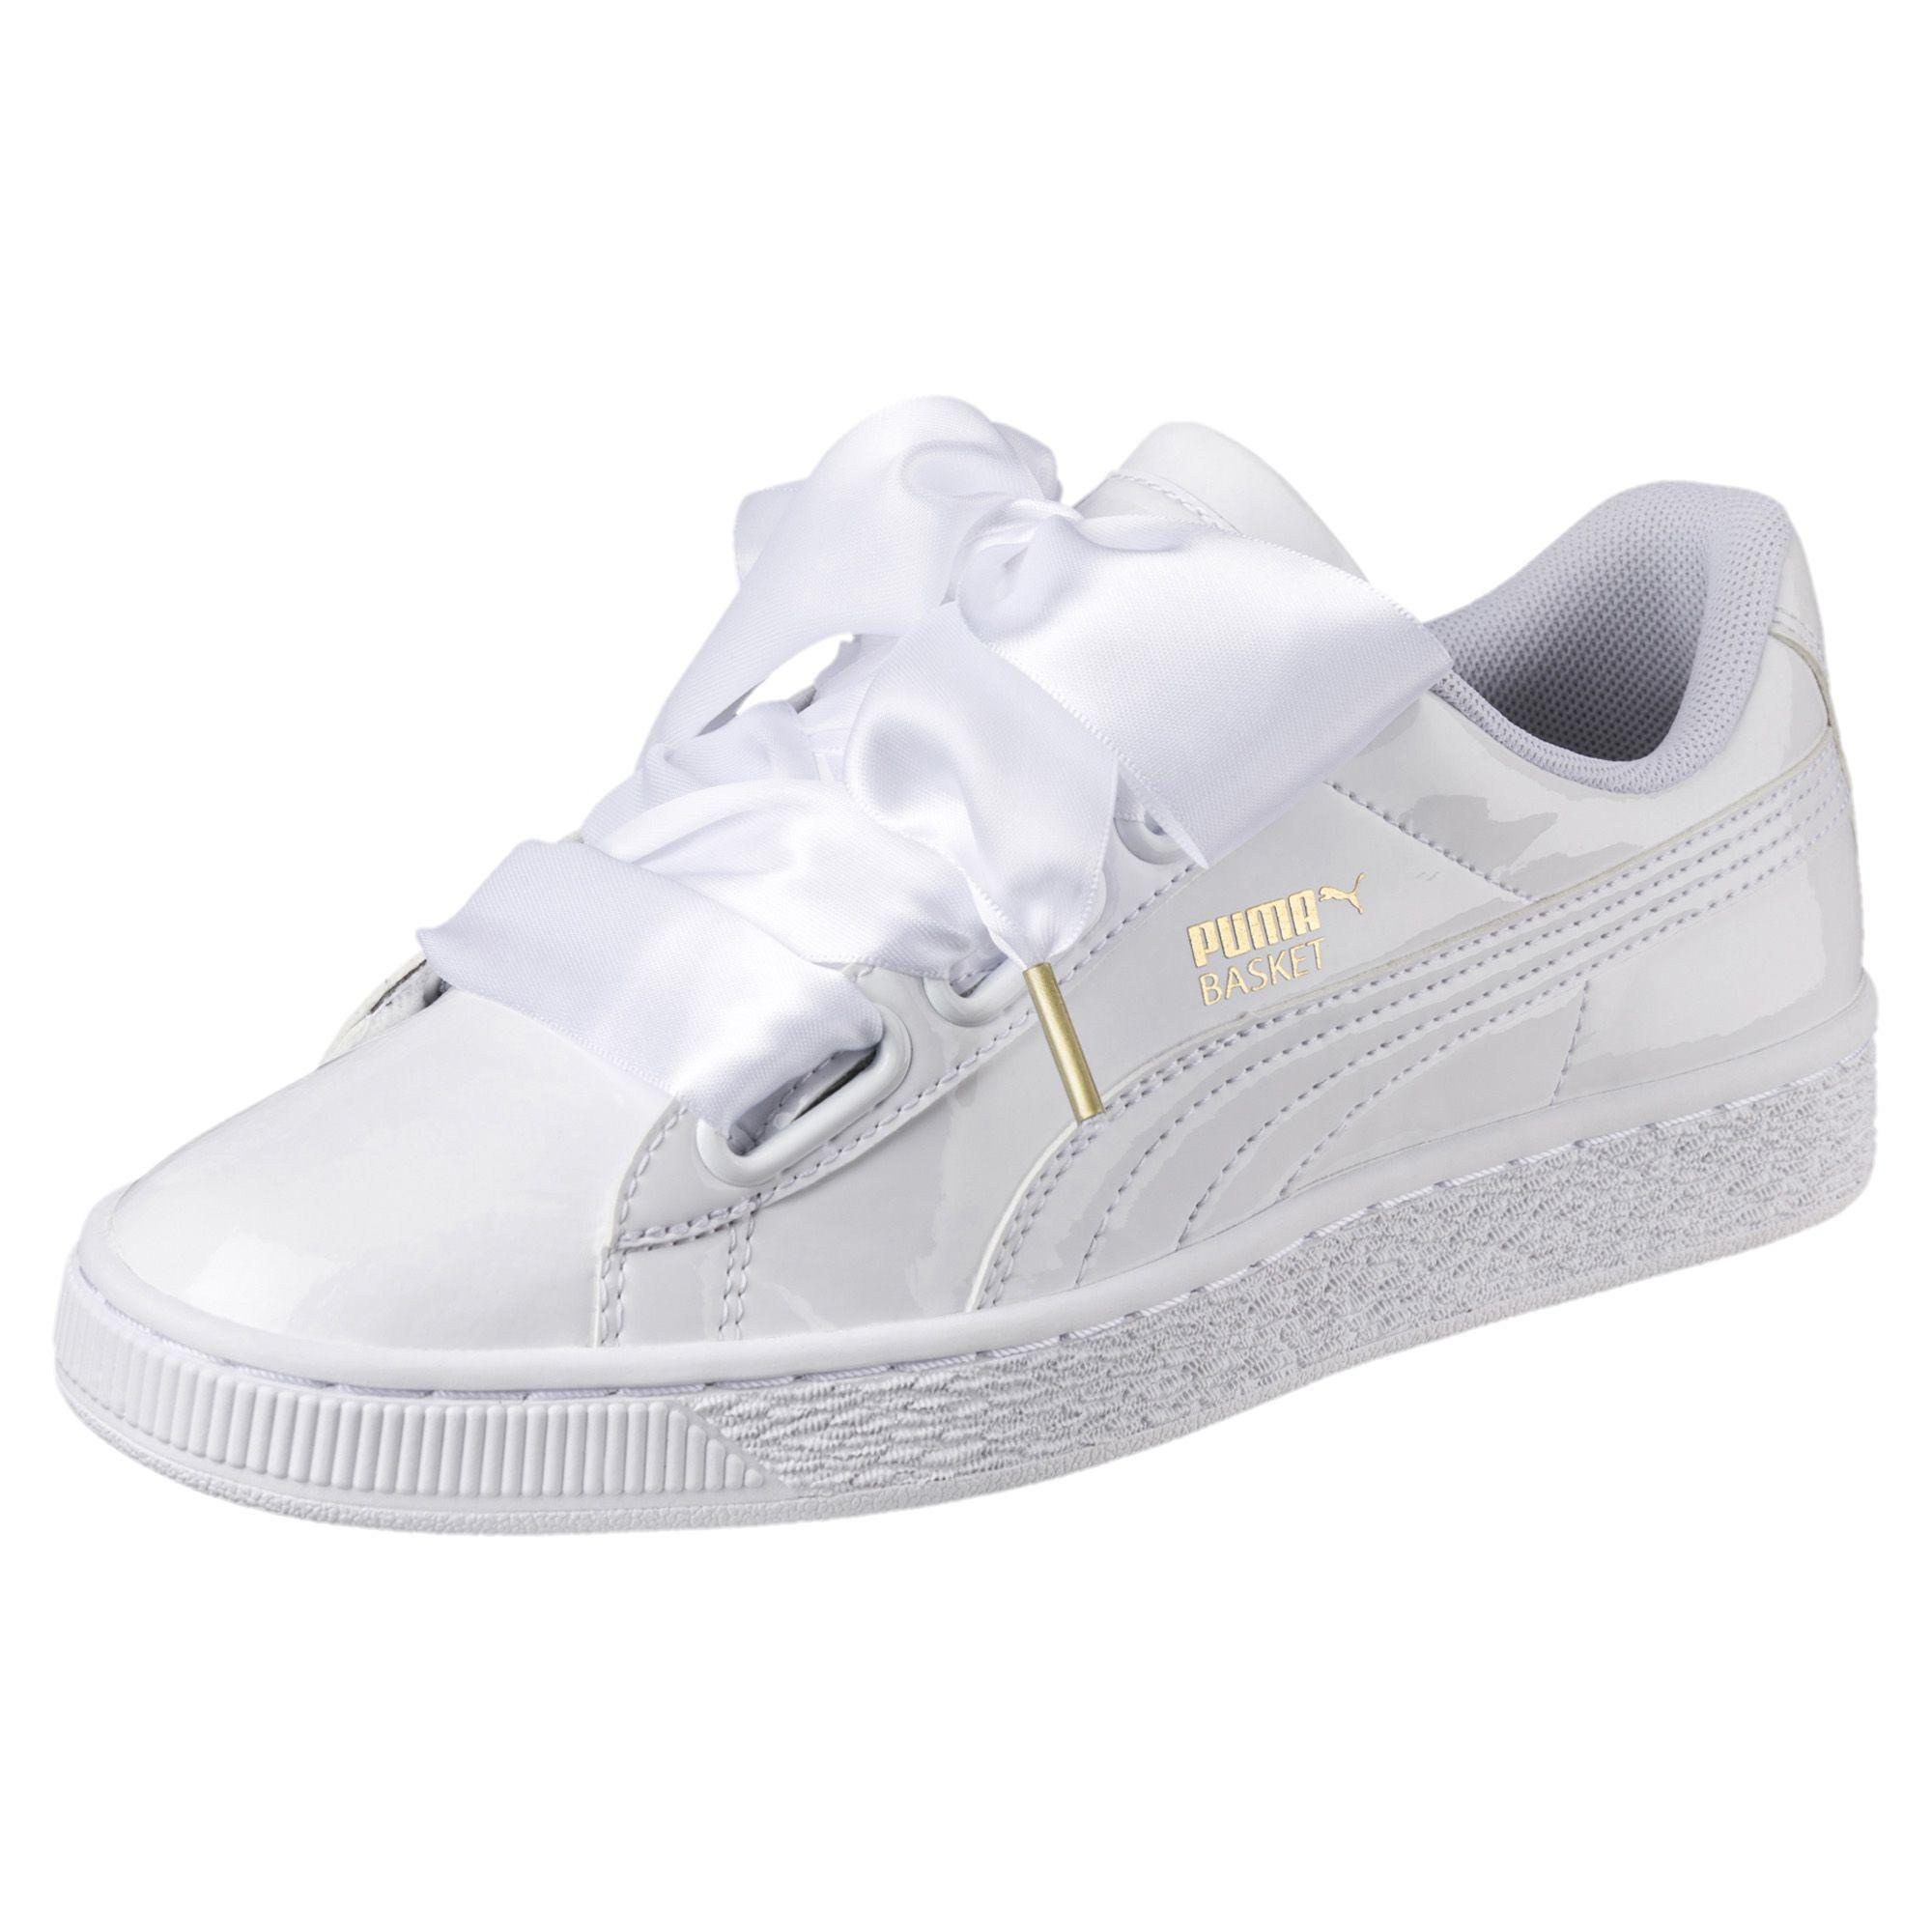 33925b06f43 Lyst - PUMA Basket Heart Patent Women s Sneakers in White